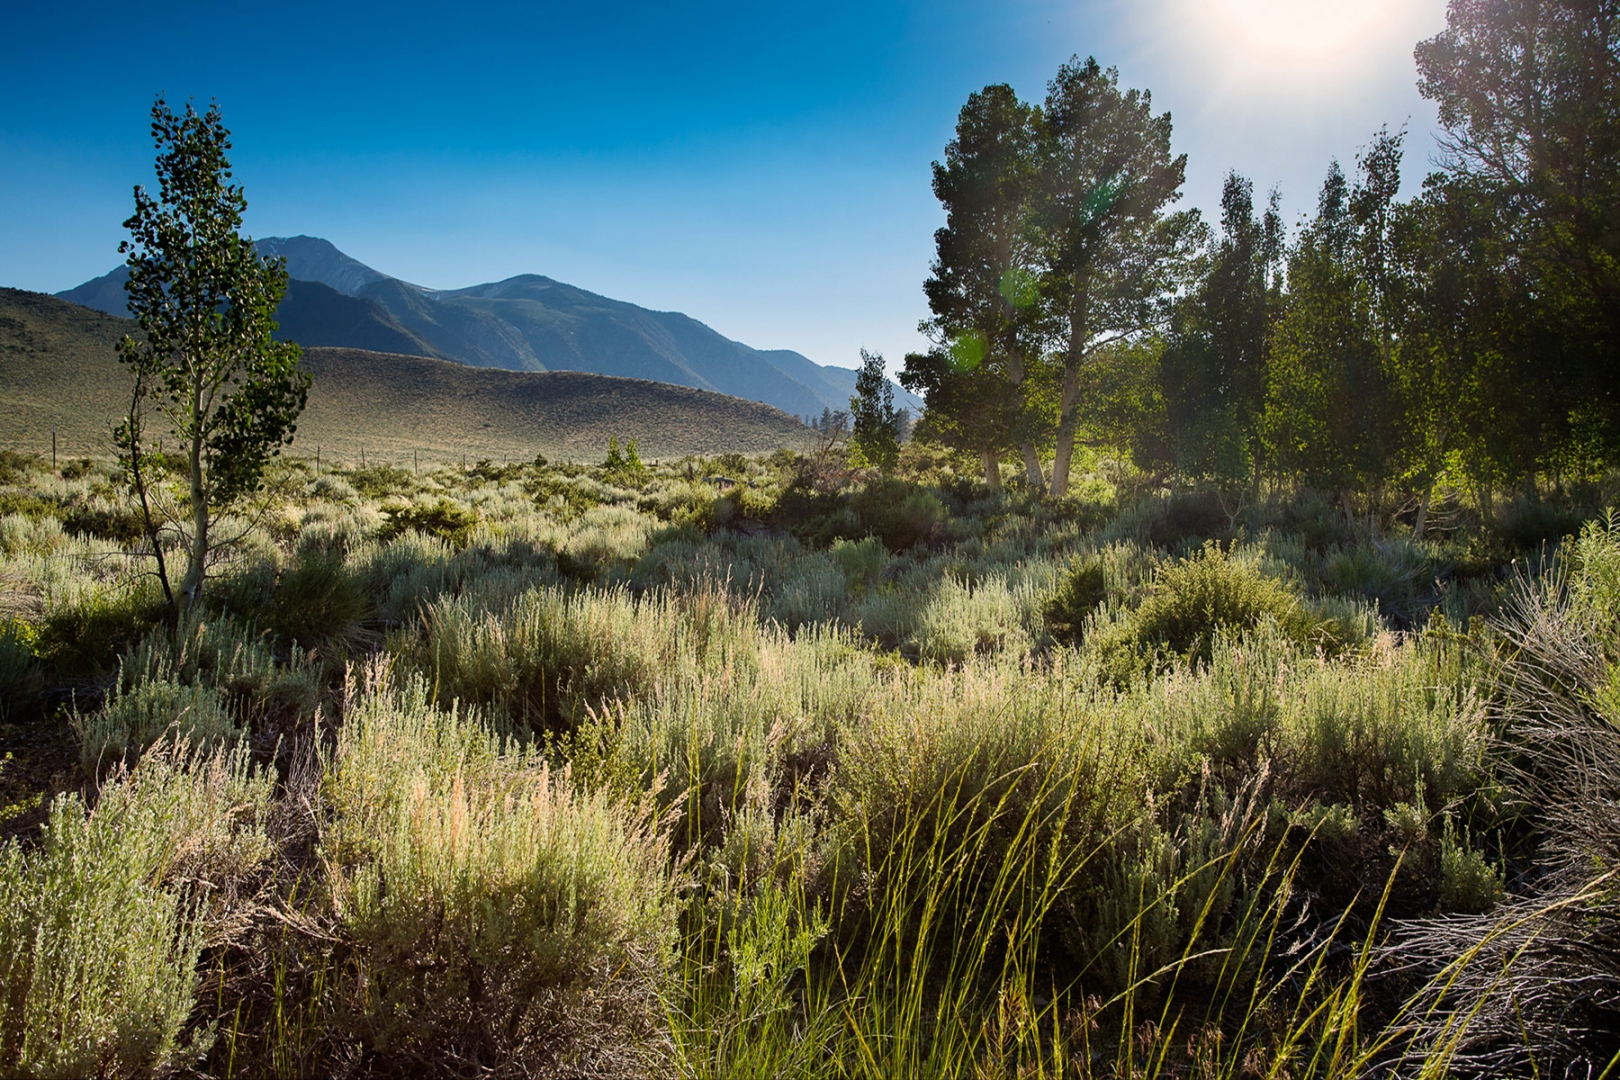 Sagebrush, aspen and pine forest provide a lush ecosystem throughout the SNARL property